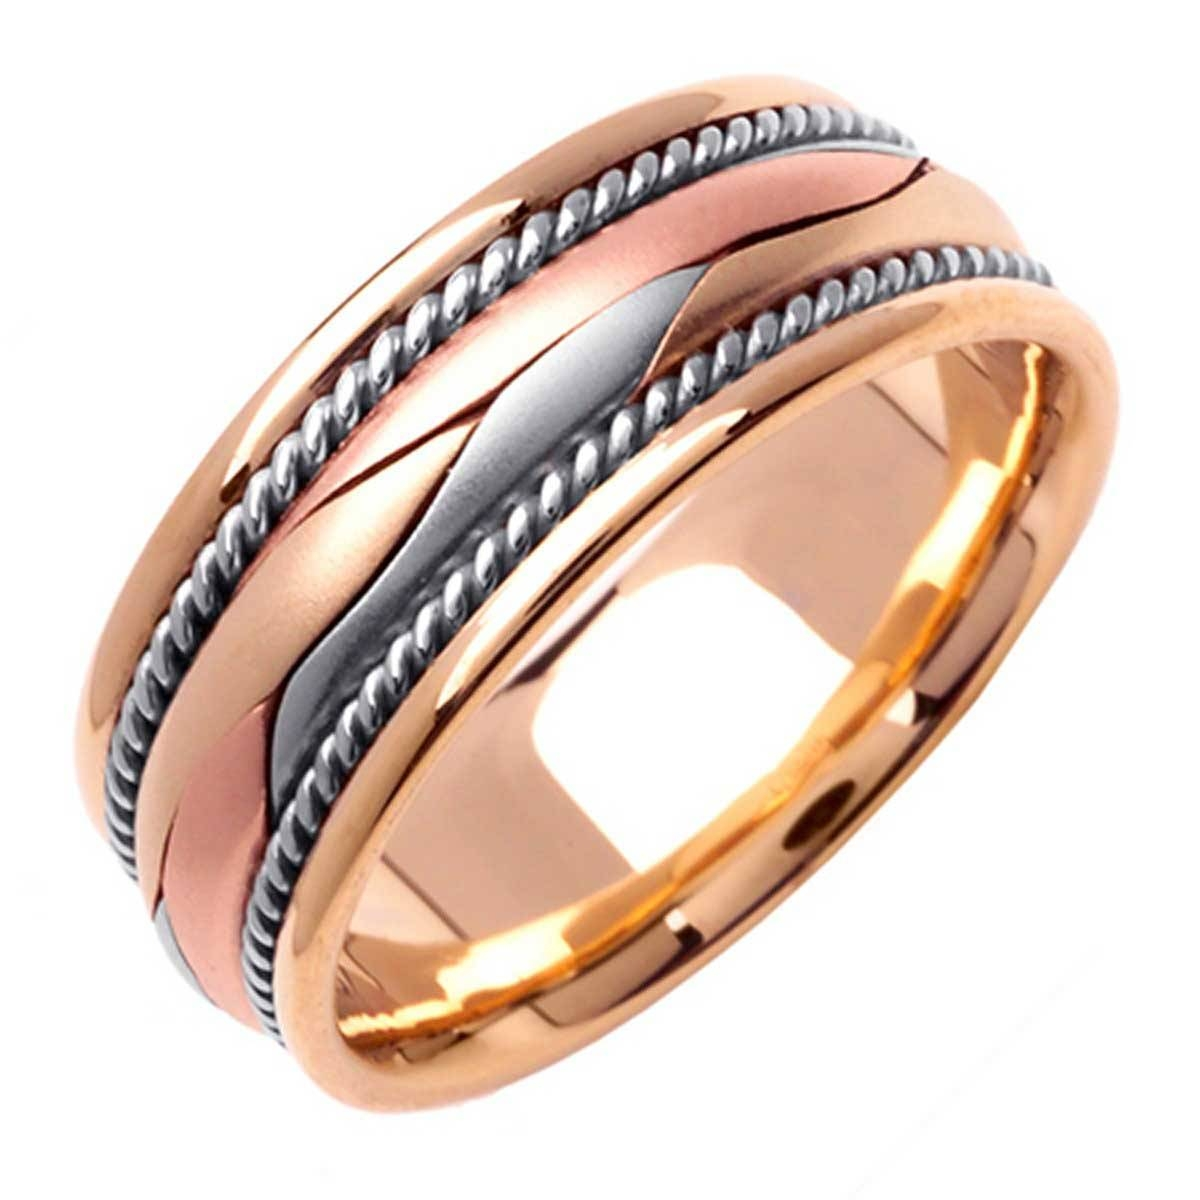 14k Tri Color Gold Rope Braid Band 8mm 3003002 – Shop At Wedding Throughout Three Color Braided Wedding Bands (View 9 of 15)